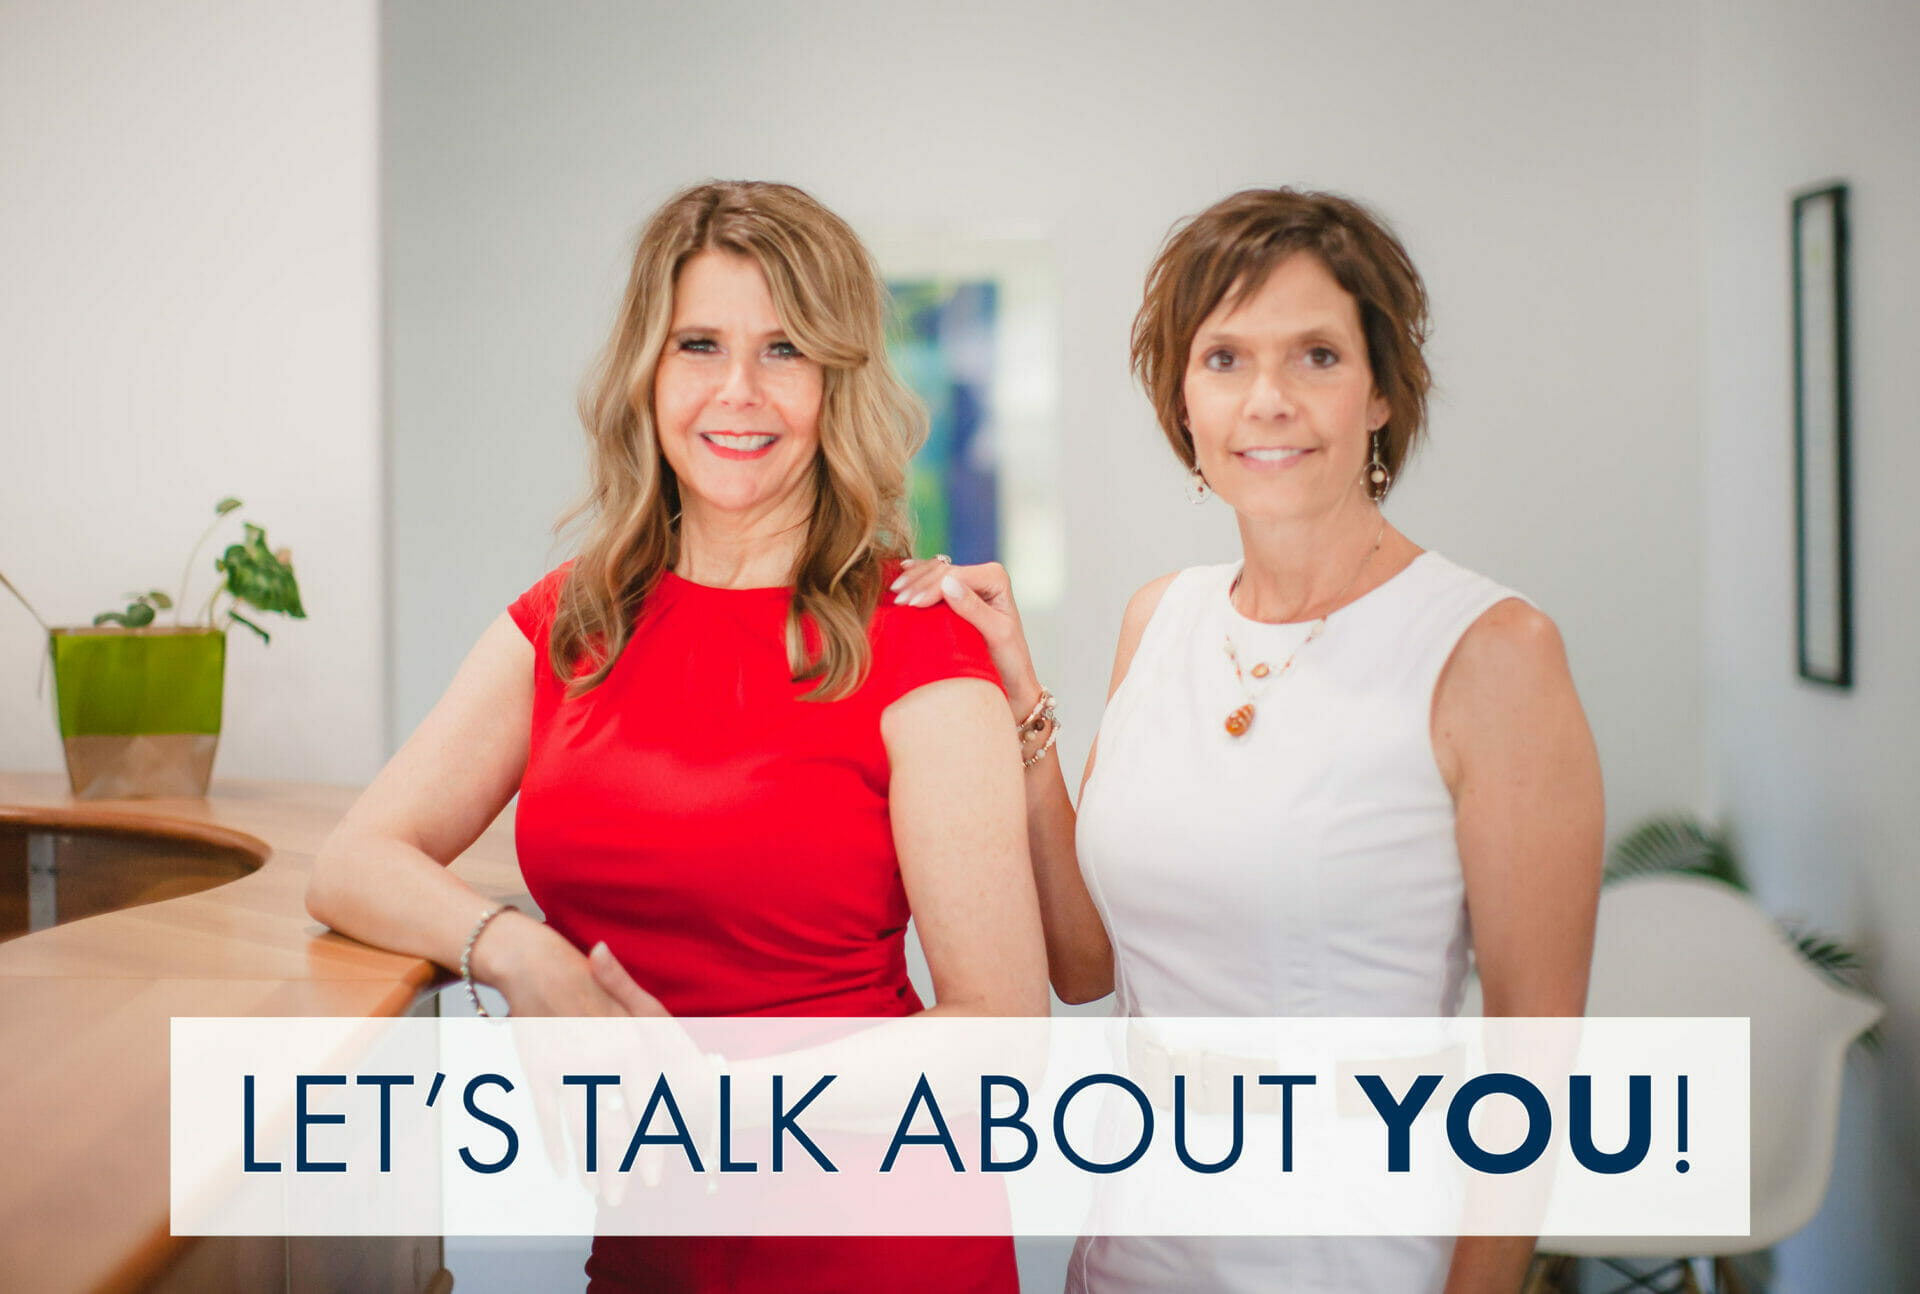 DO WEALTH, HEALTH & LIFE with DOELL OSMAK WEALTH MANAGEMENT